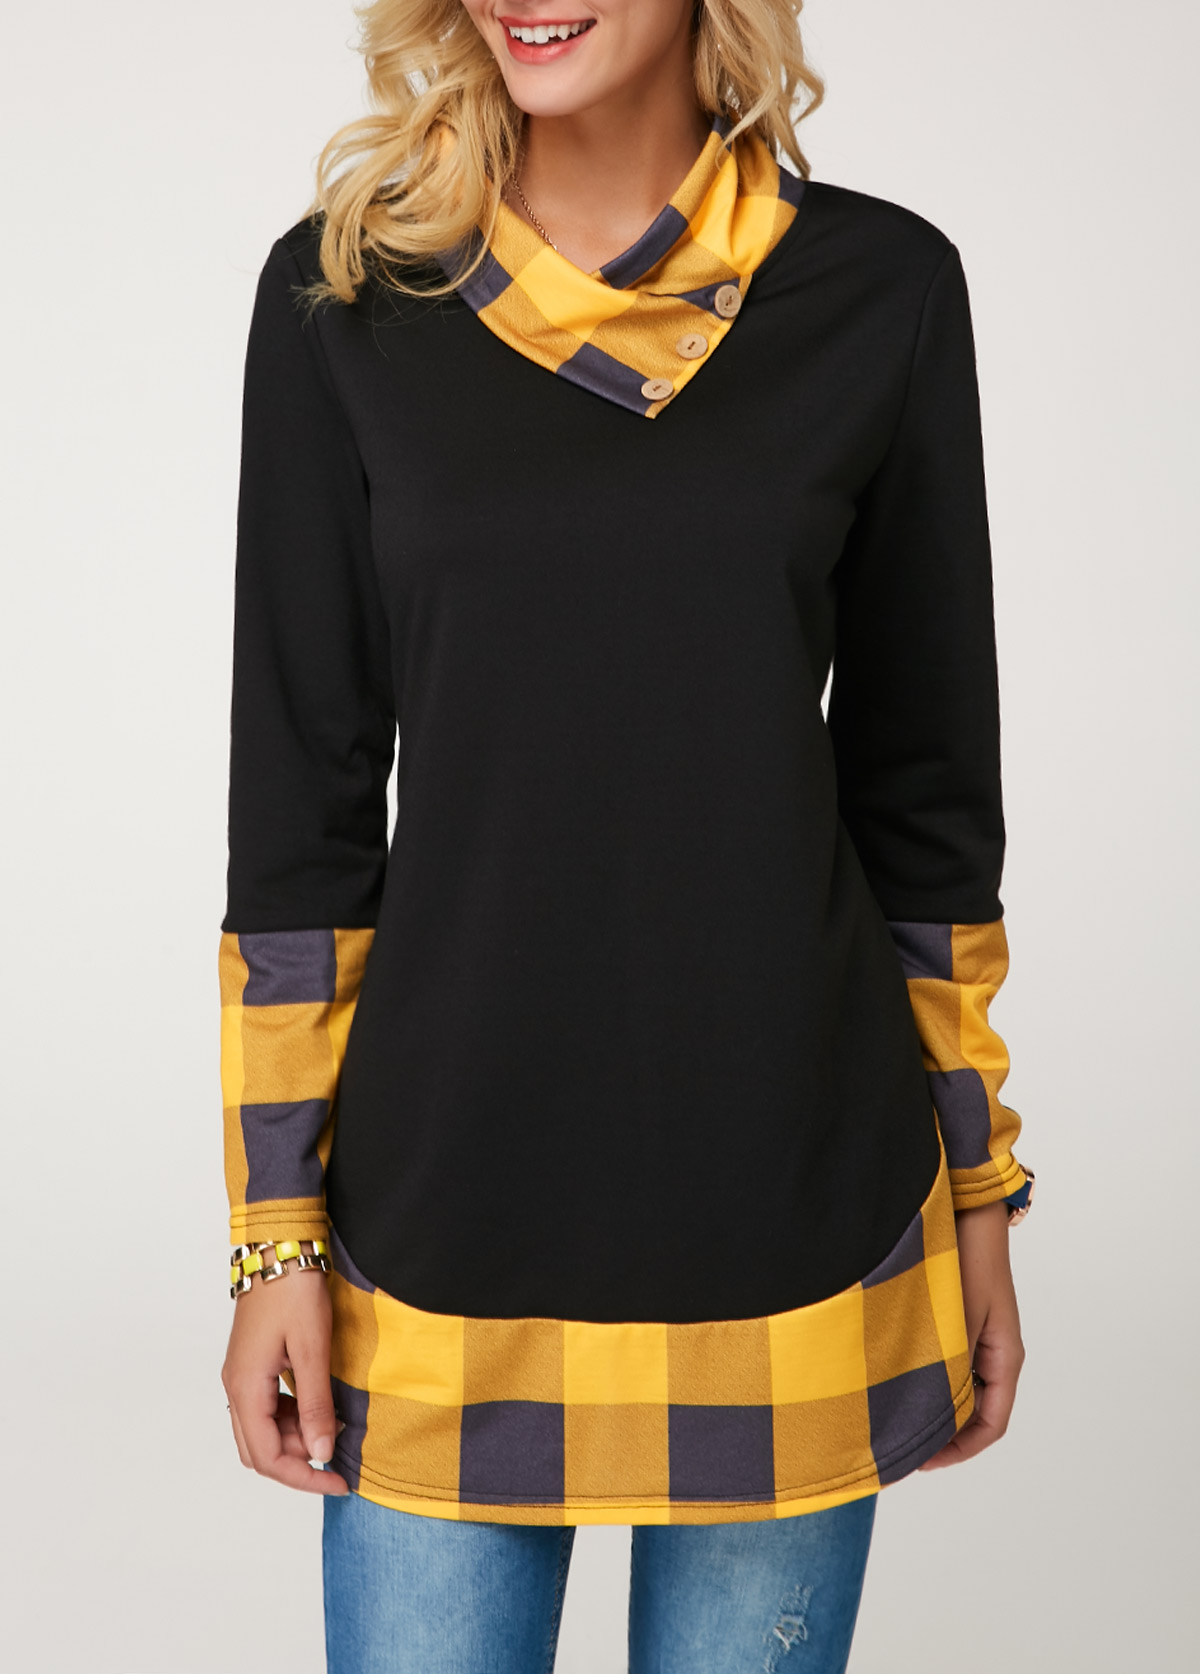 Plaid Print Button Detail Tunic T Shirt